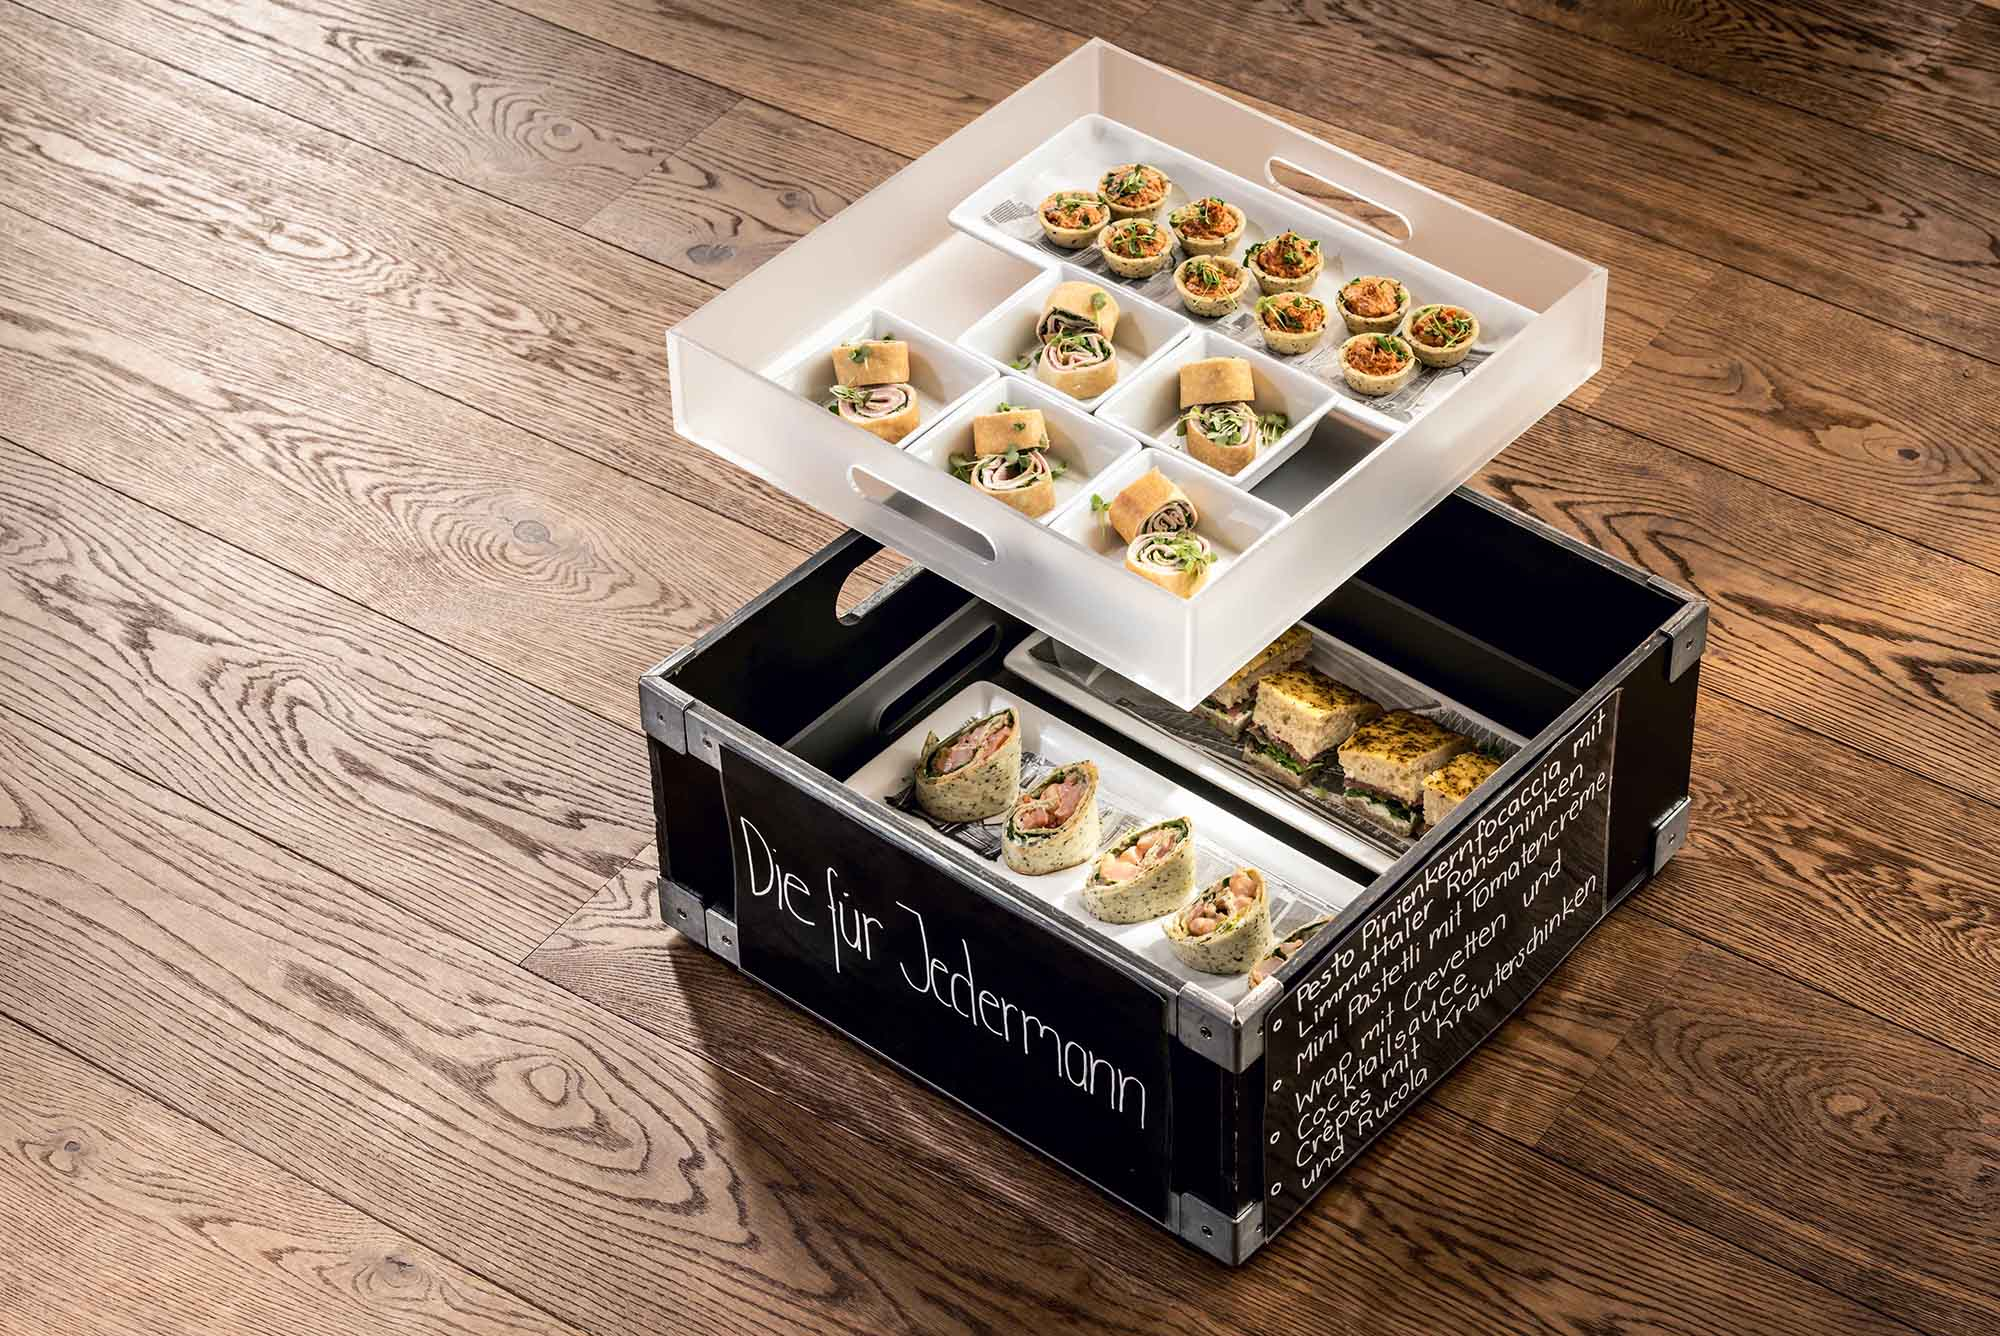 APERO BOX by Mangosteen Catering - Die für Jedermann